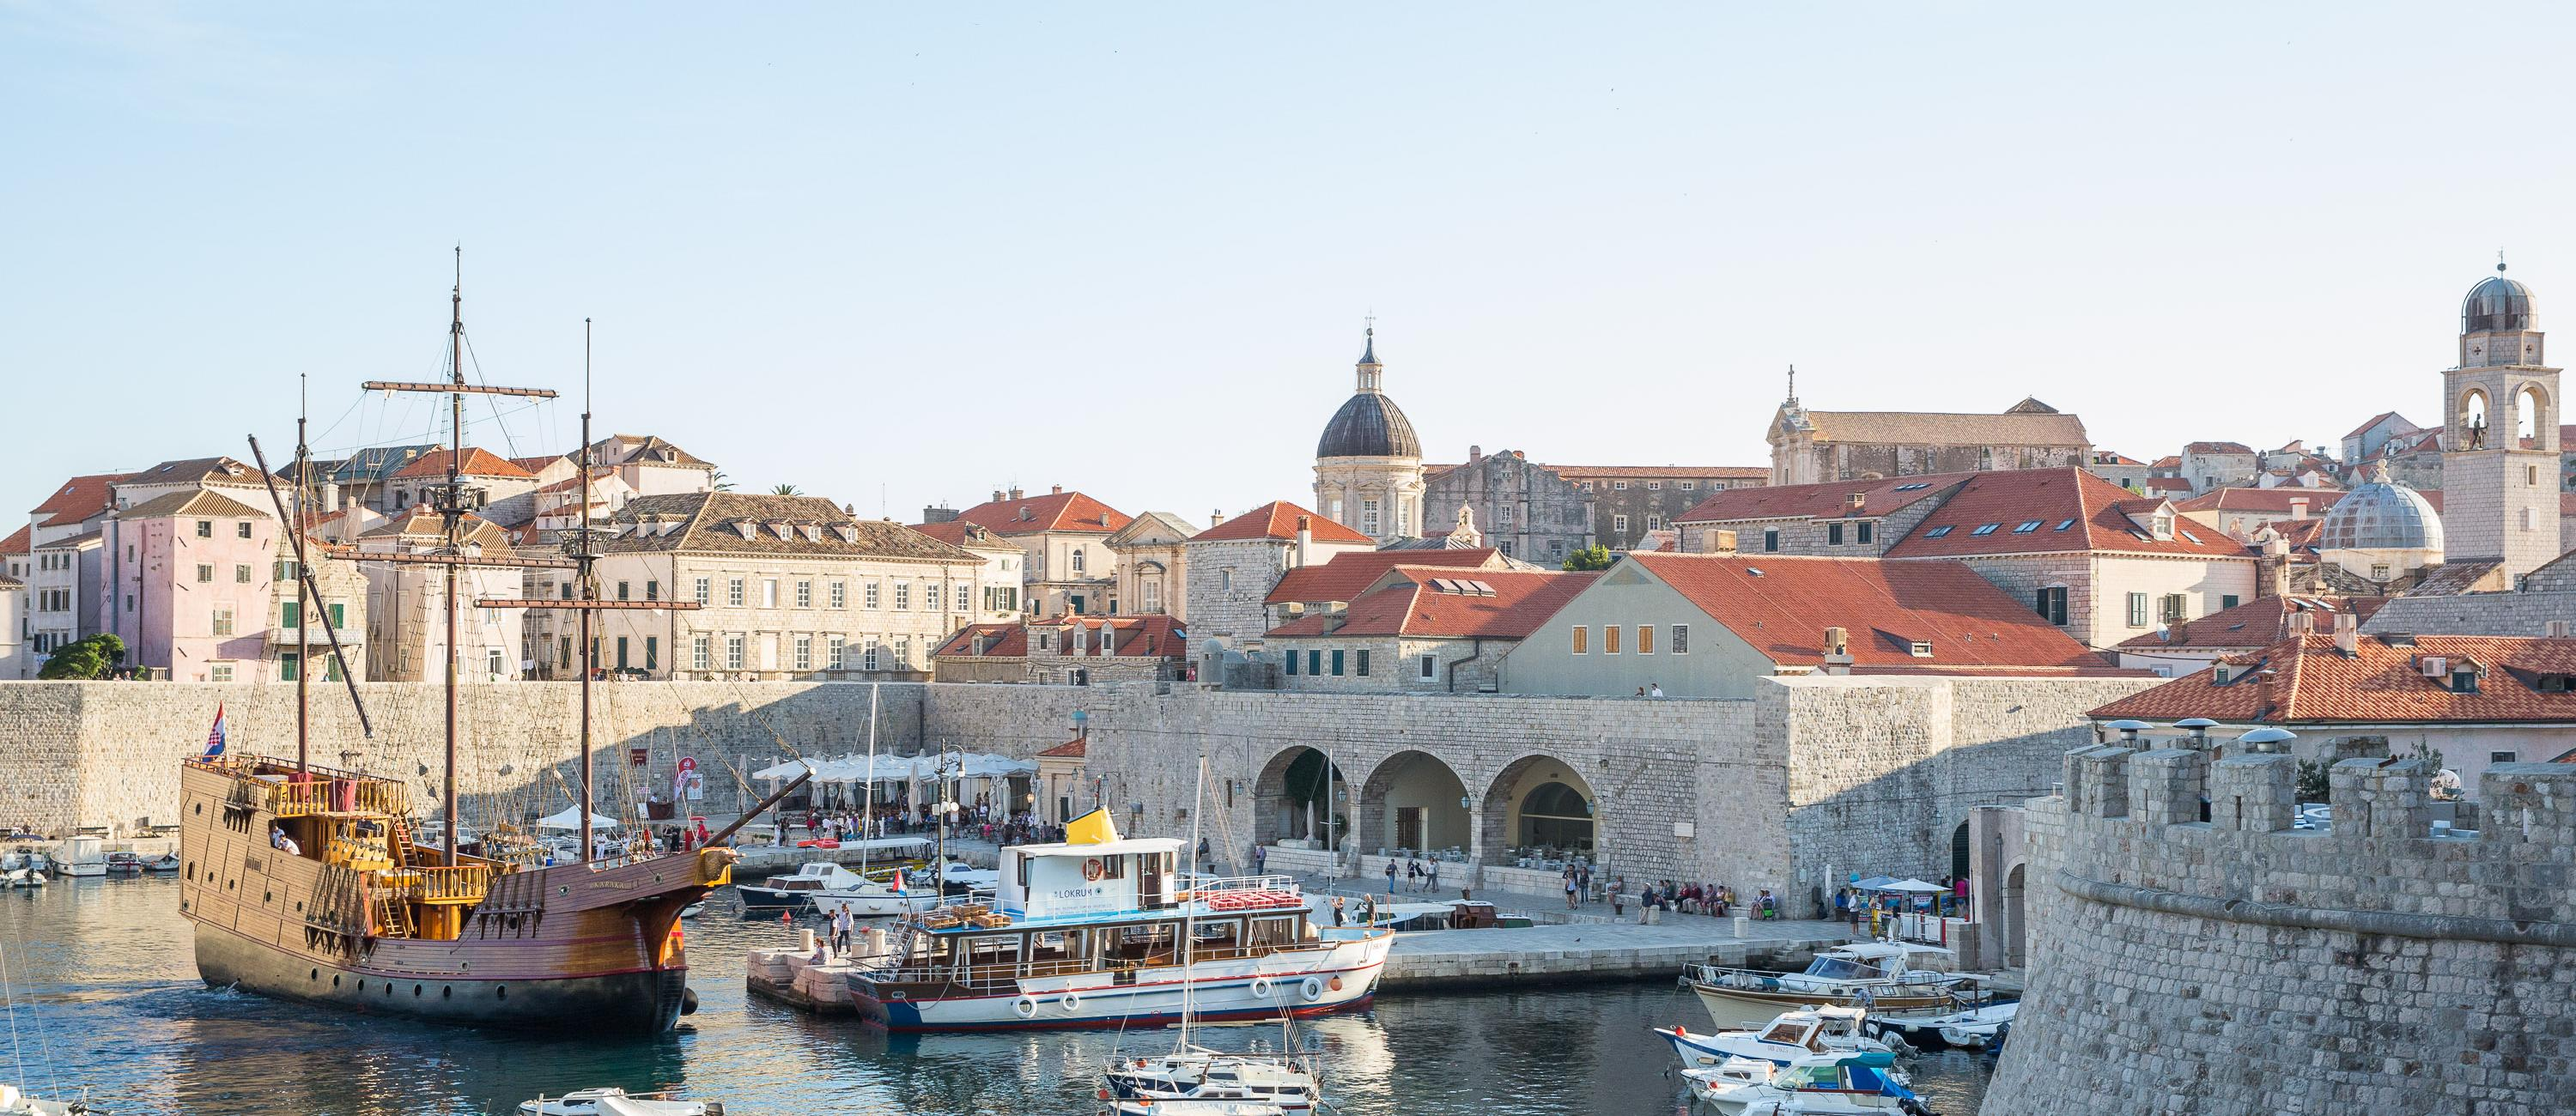 Dubrovnik Old Port with Karaka Ship